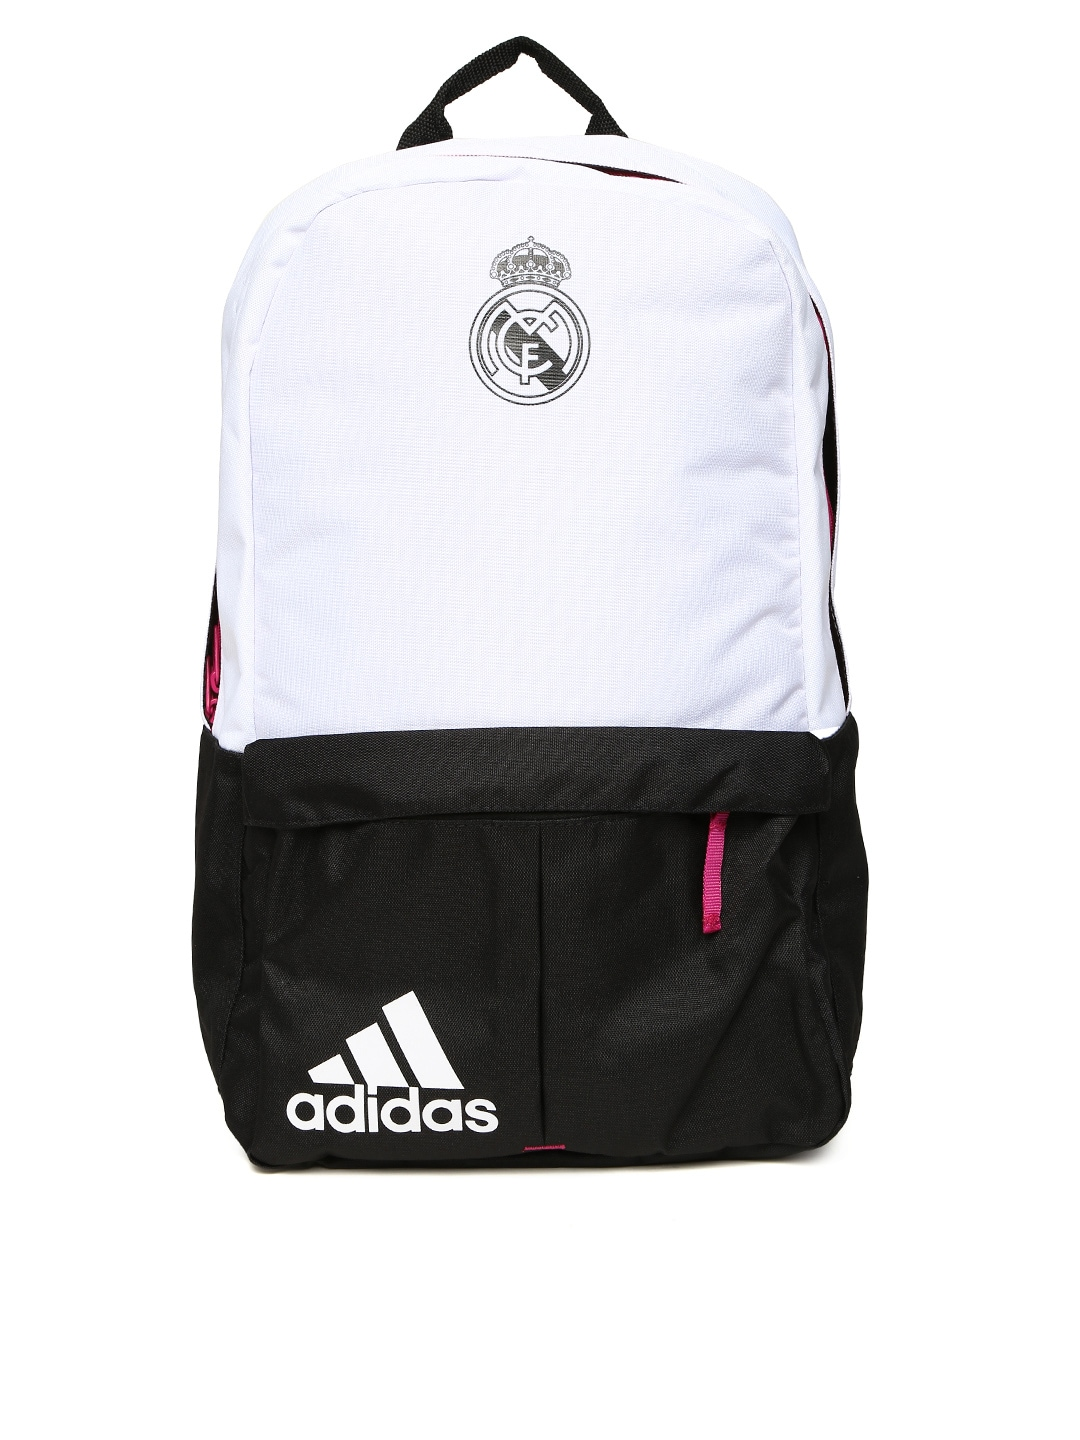 8c8fa4ae7fd7 Adidas g90155 Unisex White Black Real Madrid Backpack - Best Price ...